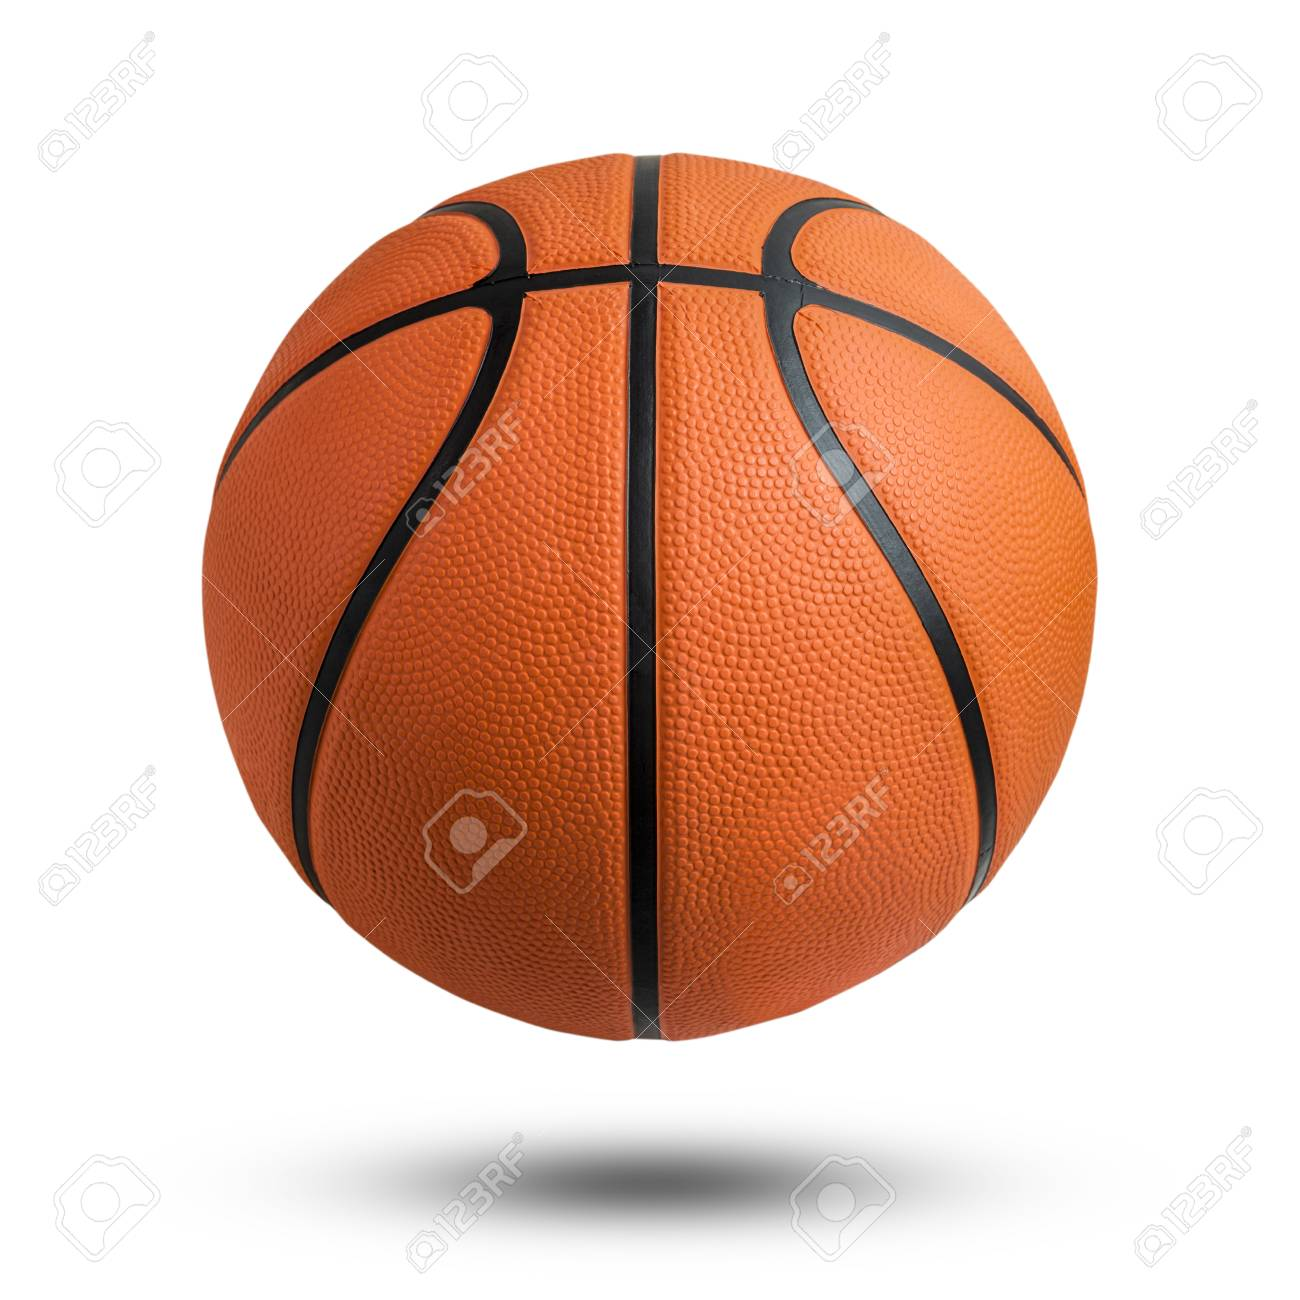 Basketball Ball Basketball Ball Over White Background Basketball Isolated Orange